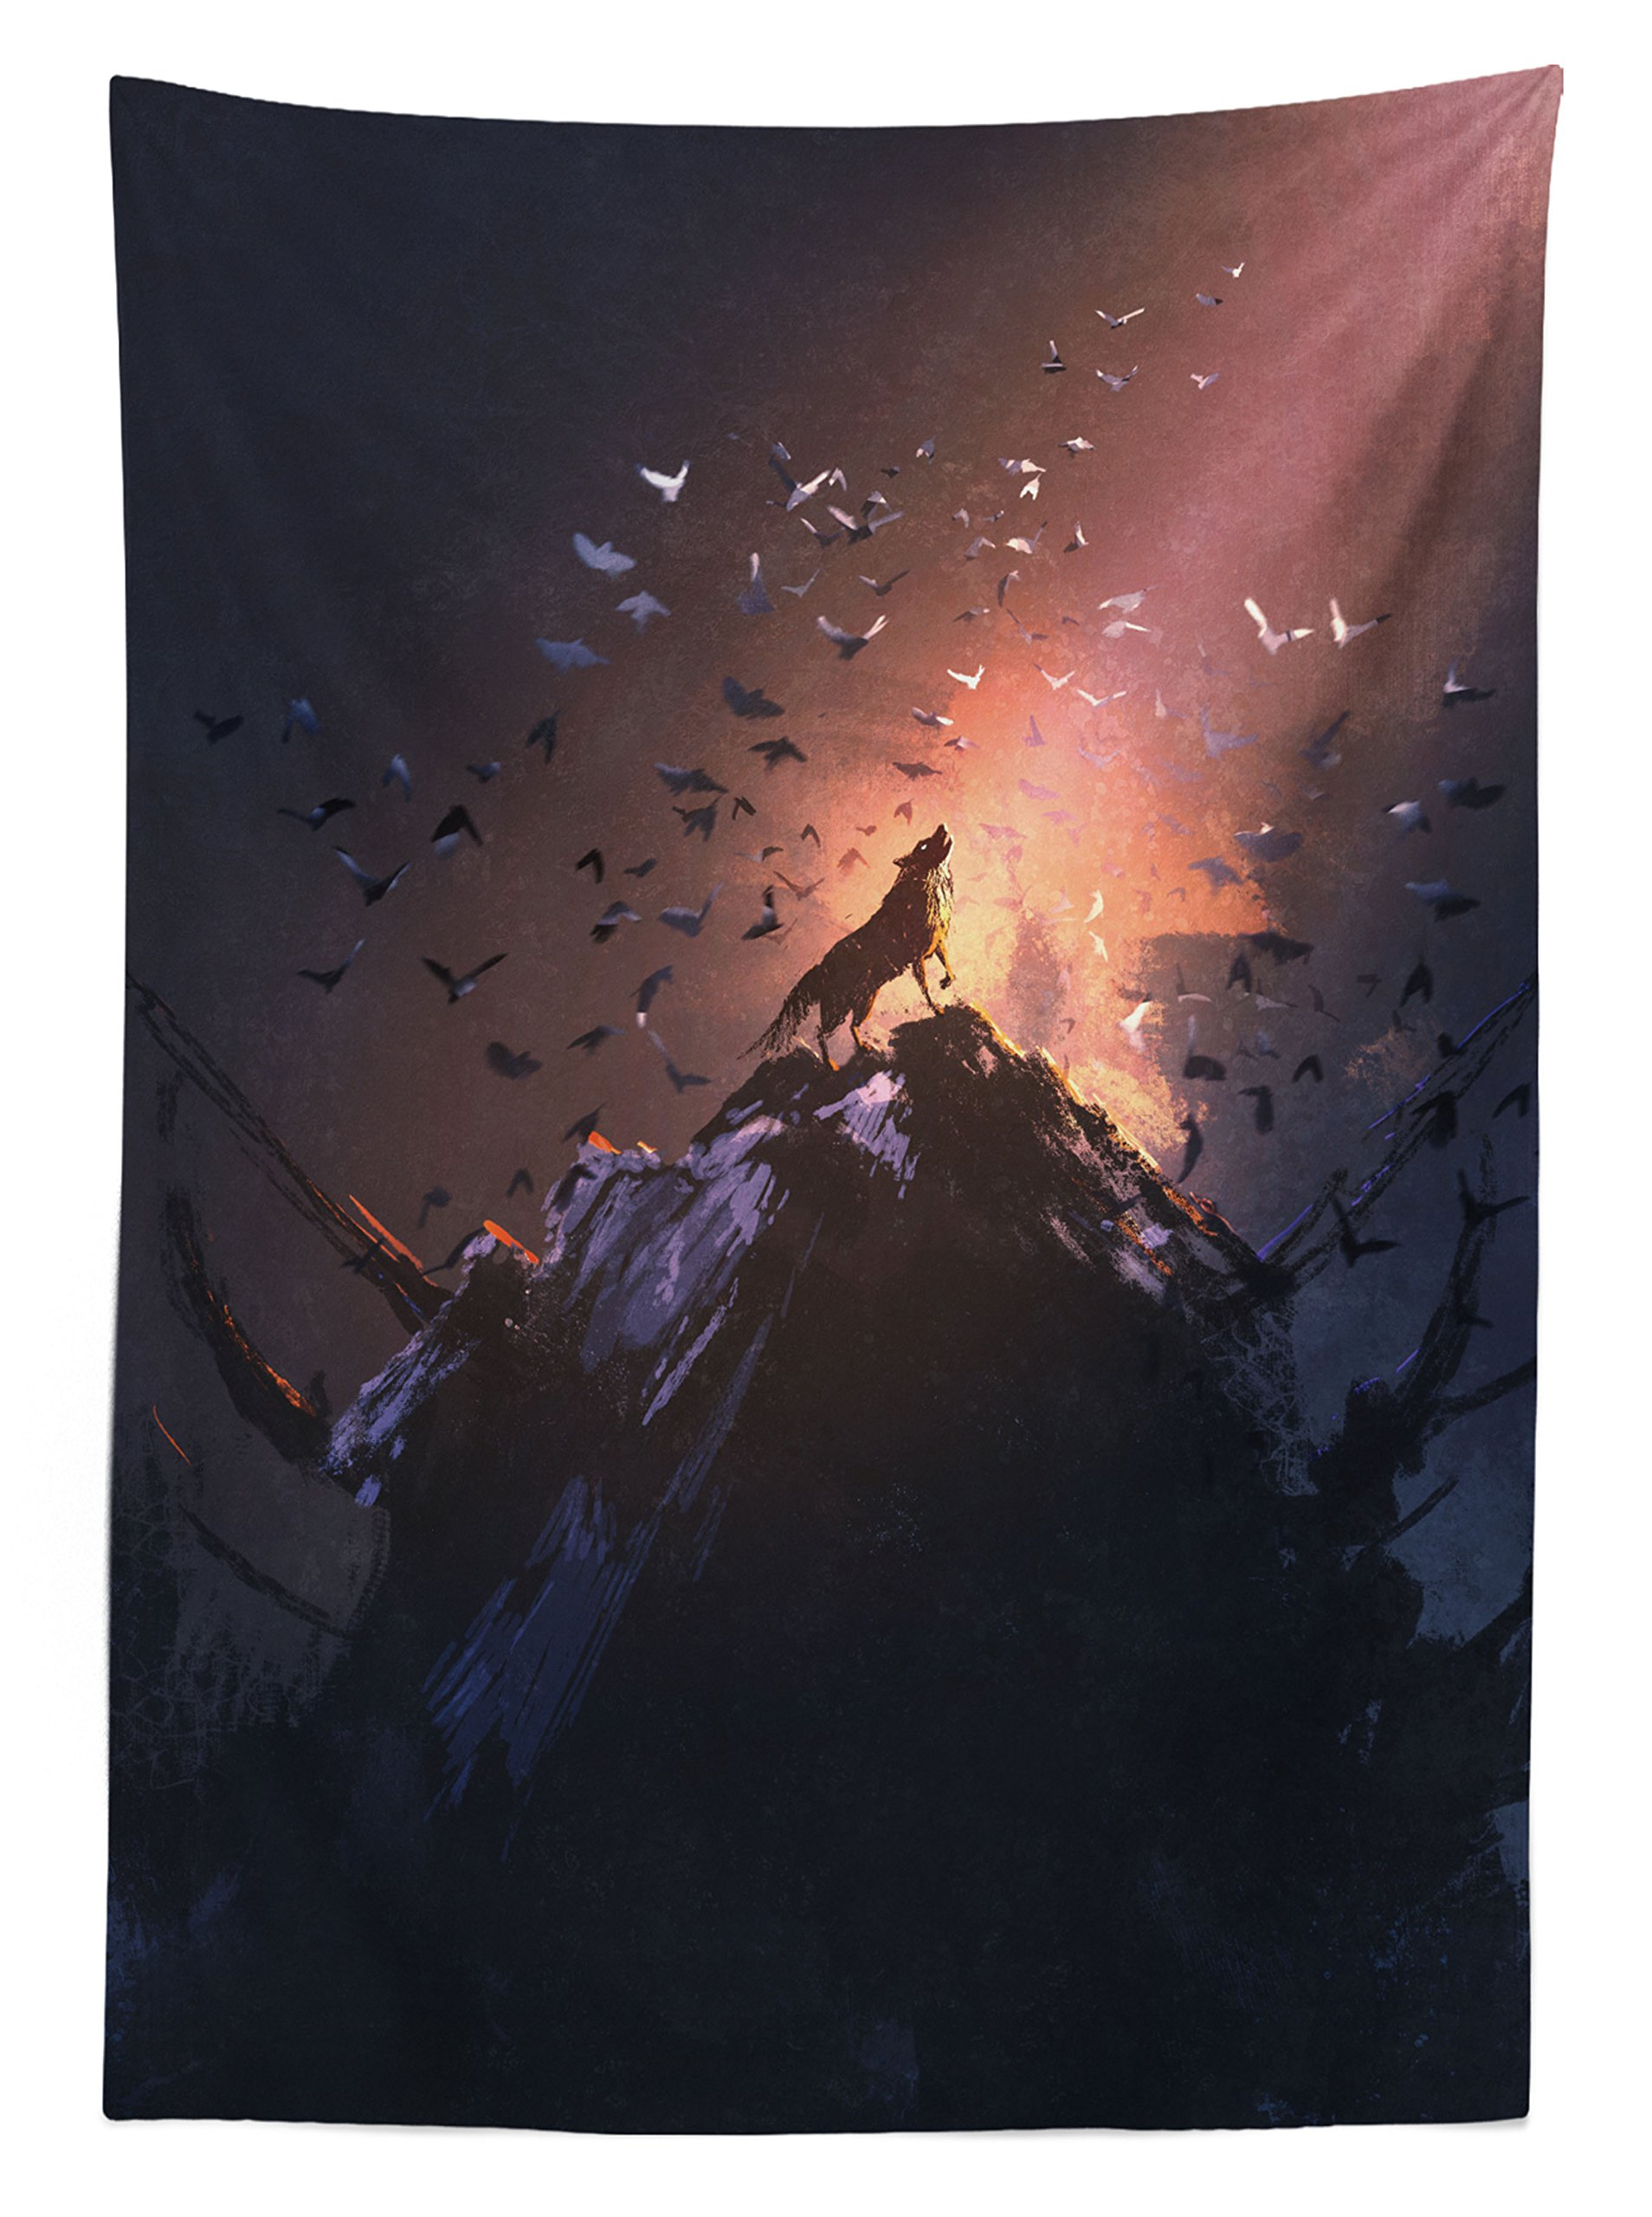 Ambesonne Fantasy World Decor Tablecloth, Howling Wolf on a Rock Surrounded by Bats Birds Scary Dog Wild Life Animals Picture Art, Rectangular Table Cover for Dining Room Kitchen, 52x70 inch, Multi by Ambesonne (Image #2)